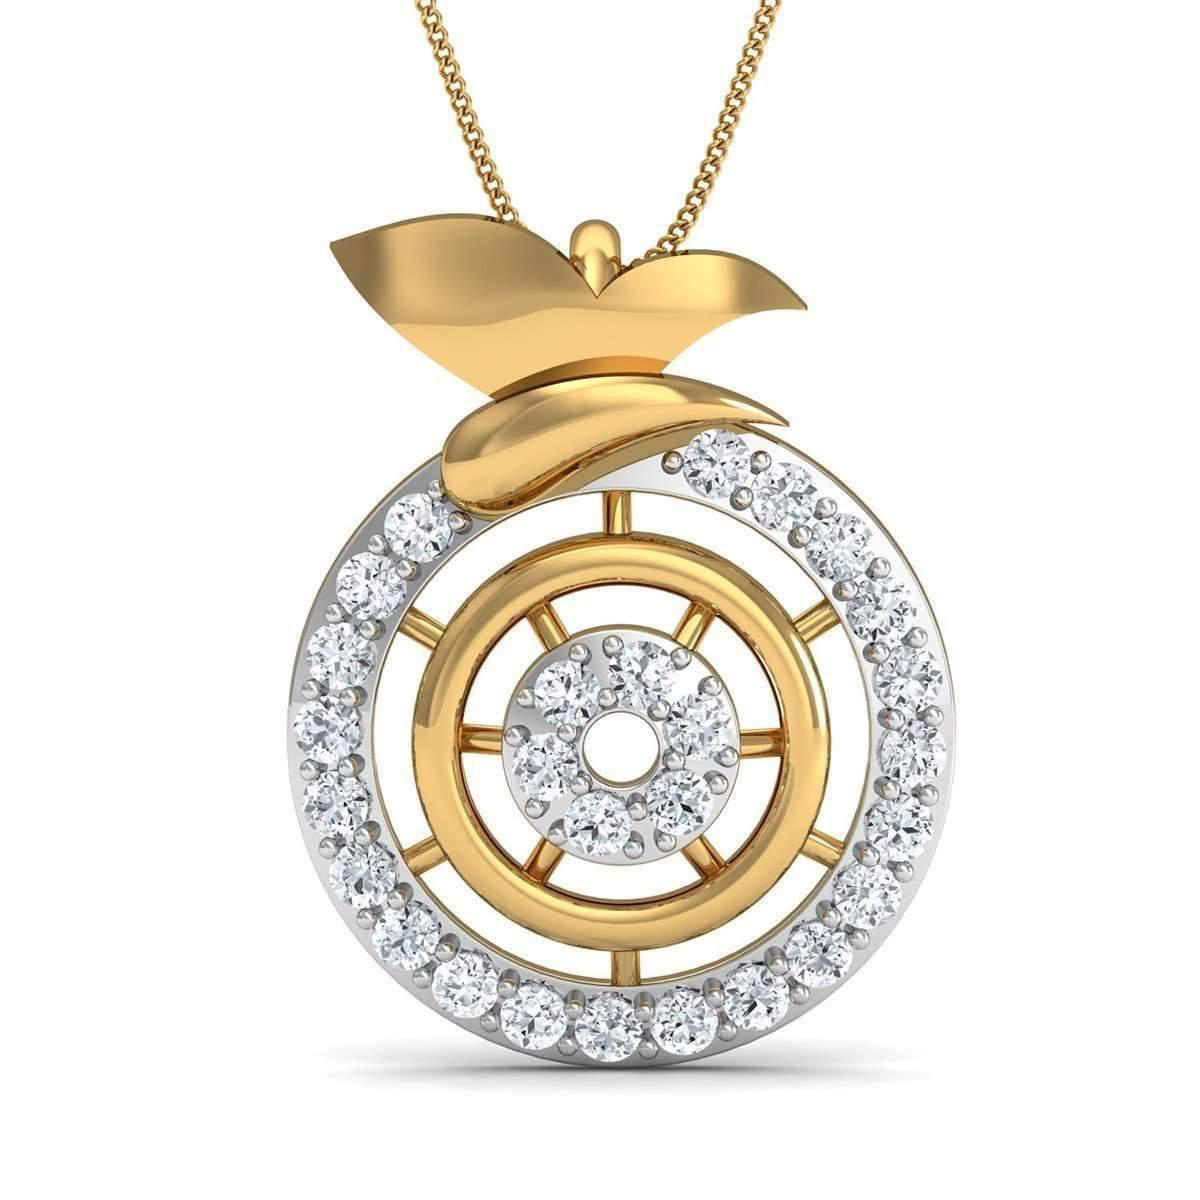 Diamoire Jewels Inspired by Nature 18kt Rose Gold Pave Designer Diamond Pendant 34IQkSTs2y